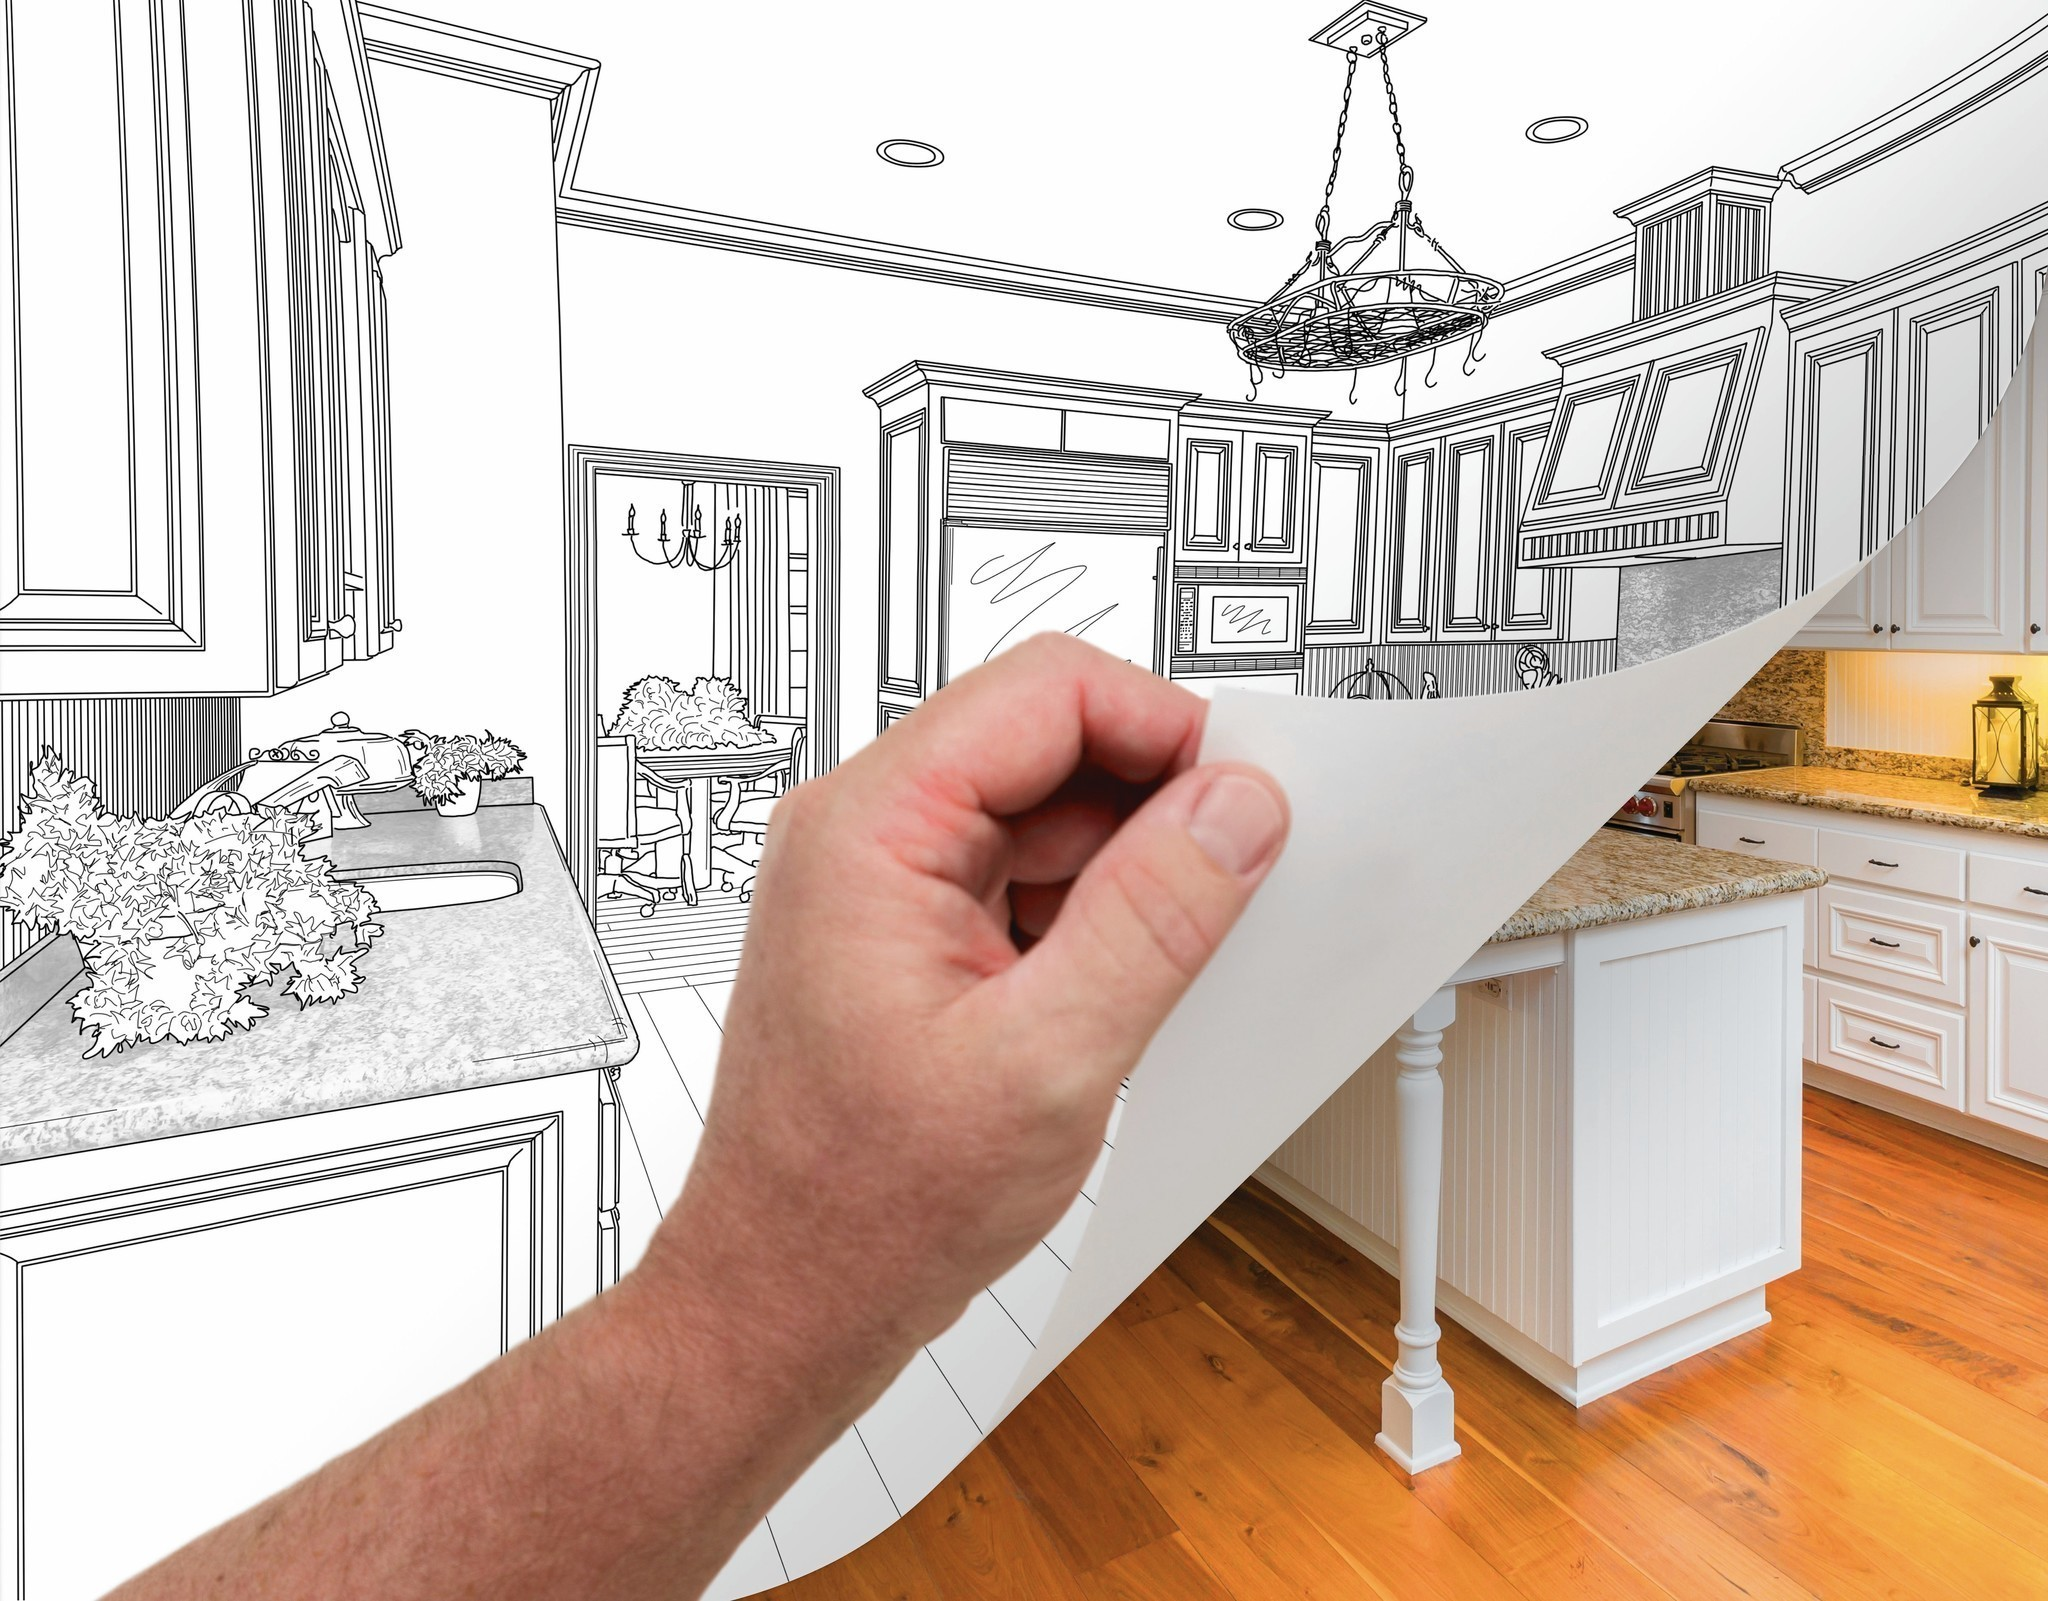 Where to save where to splurge in kitchen remodel for Kitchen renovation return on investment